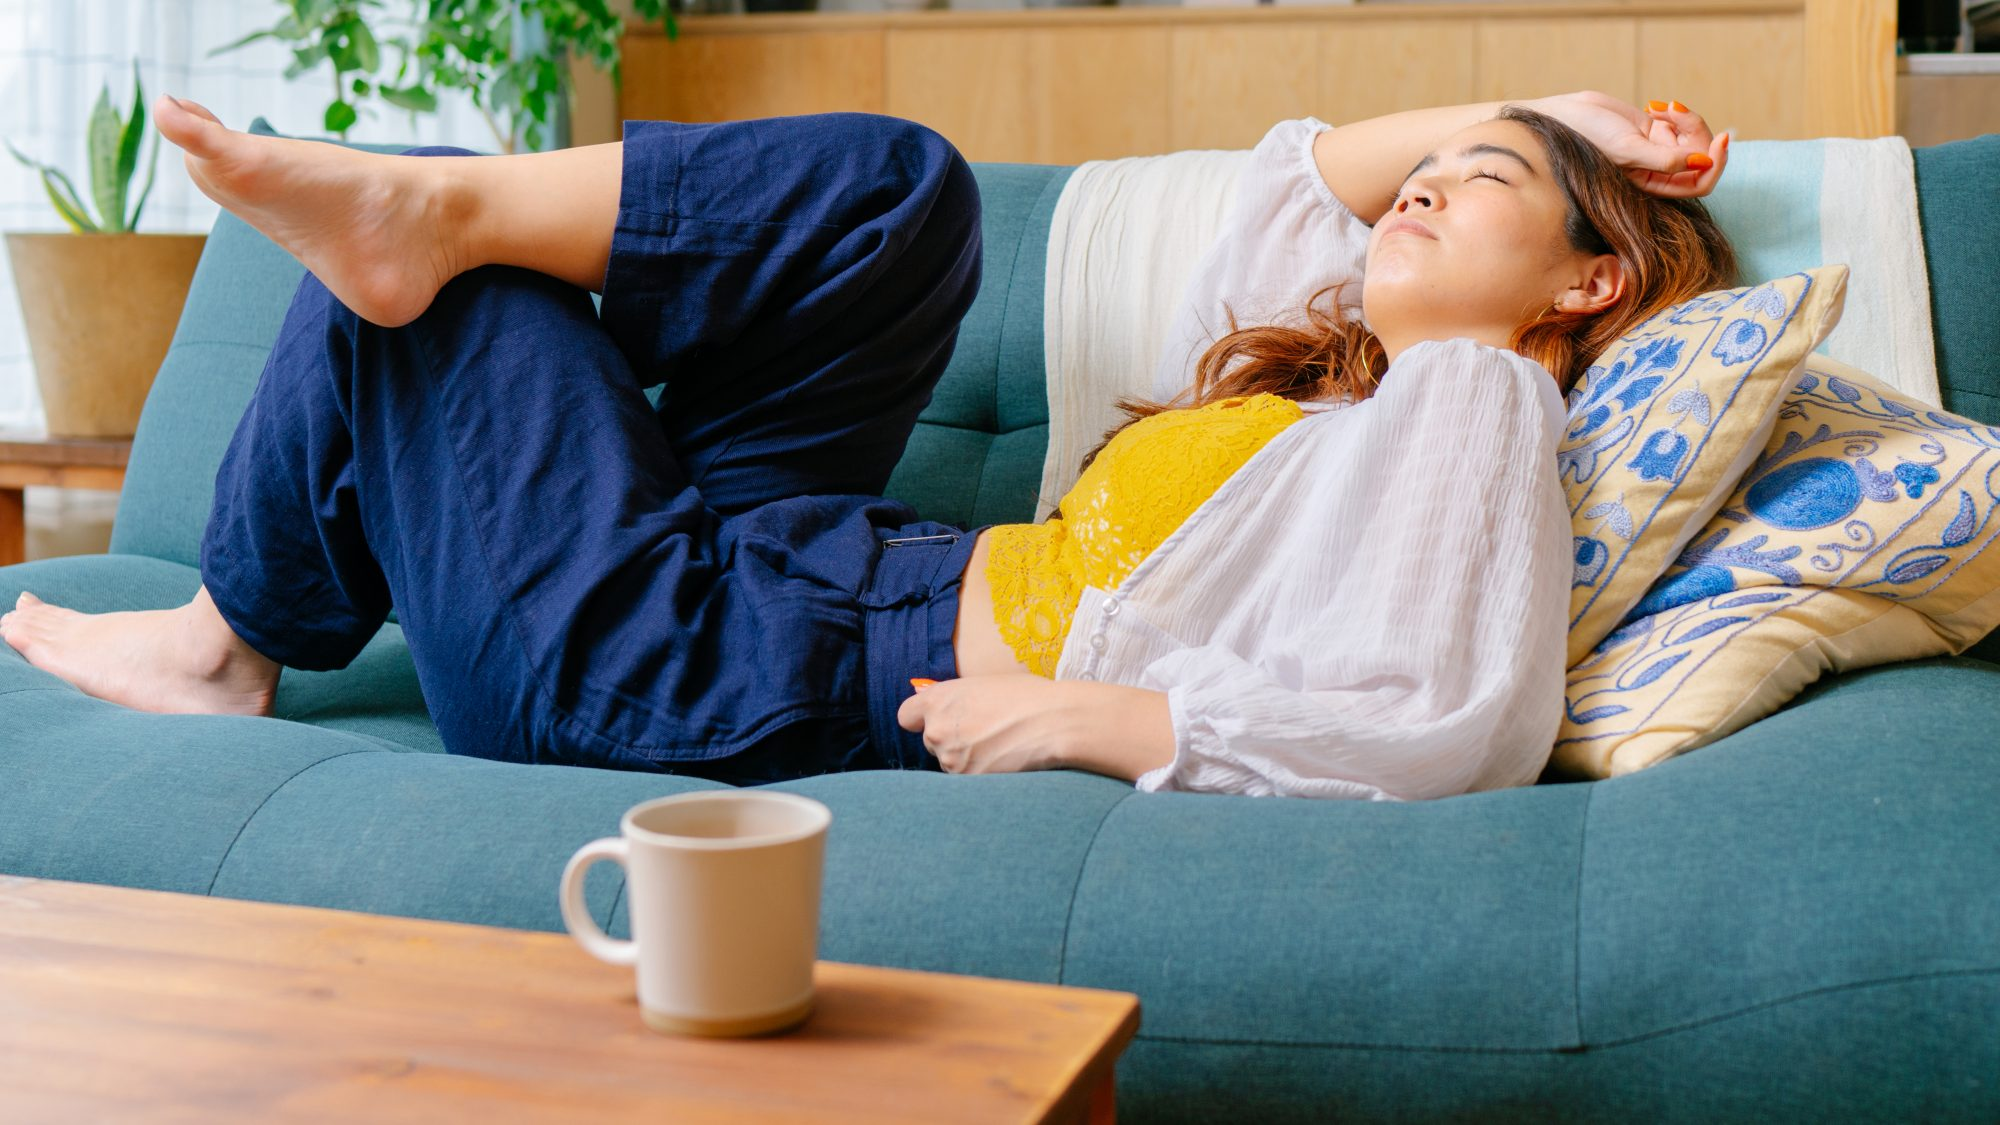 afternoon-naps-can-help-mental-agility-inflammation-new-study